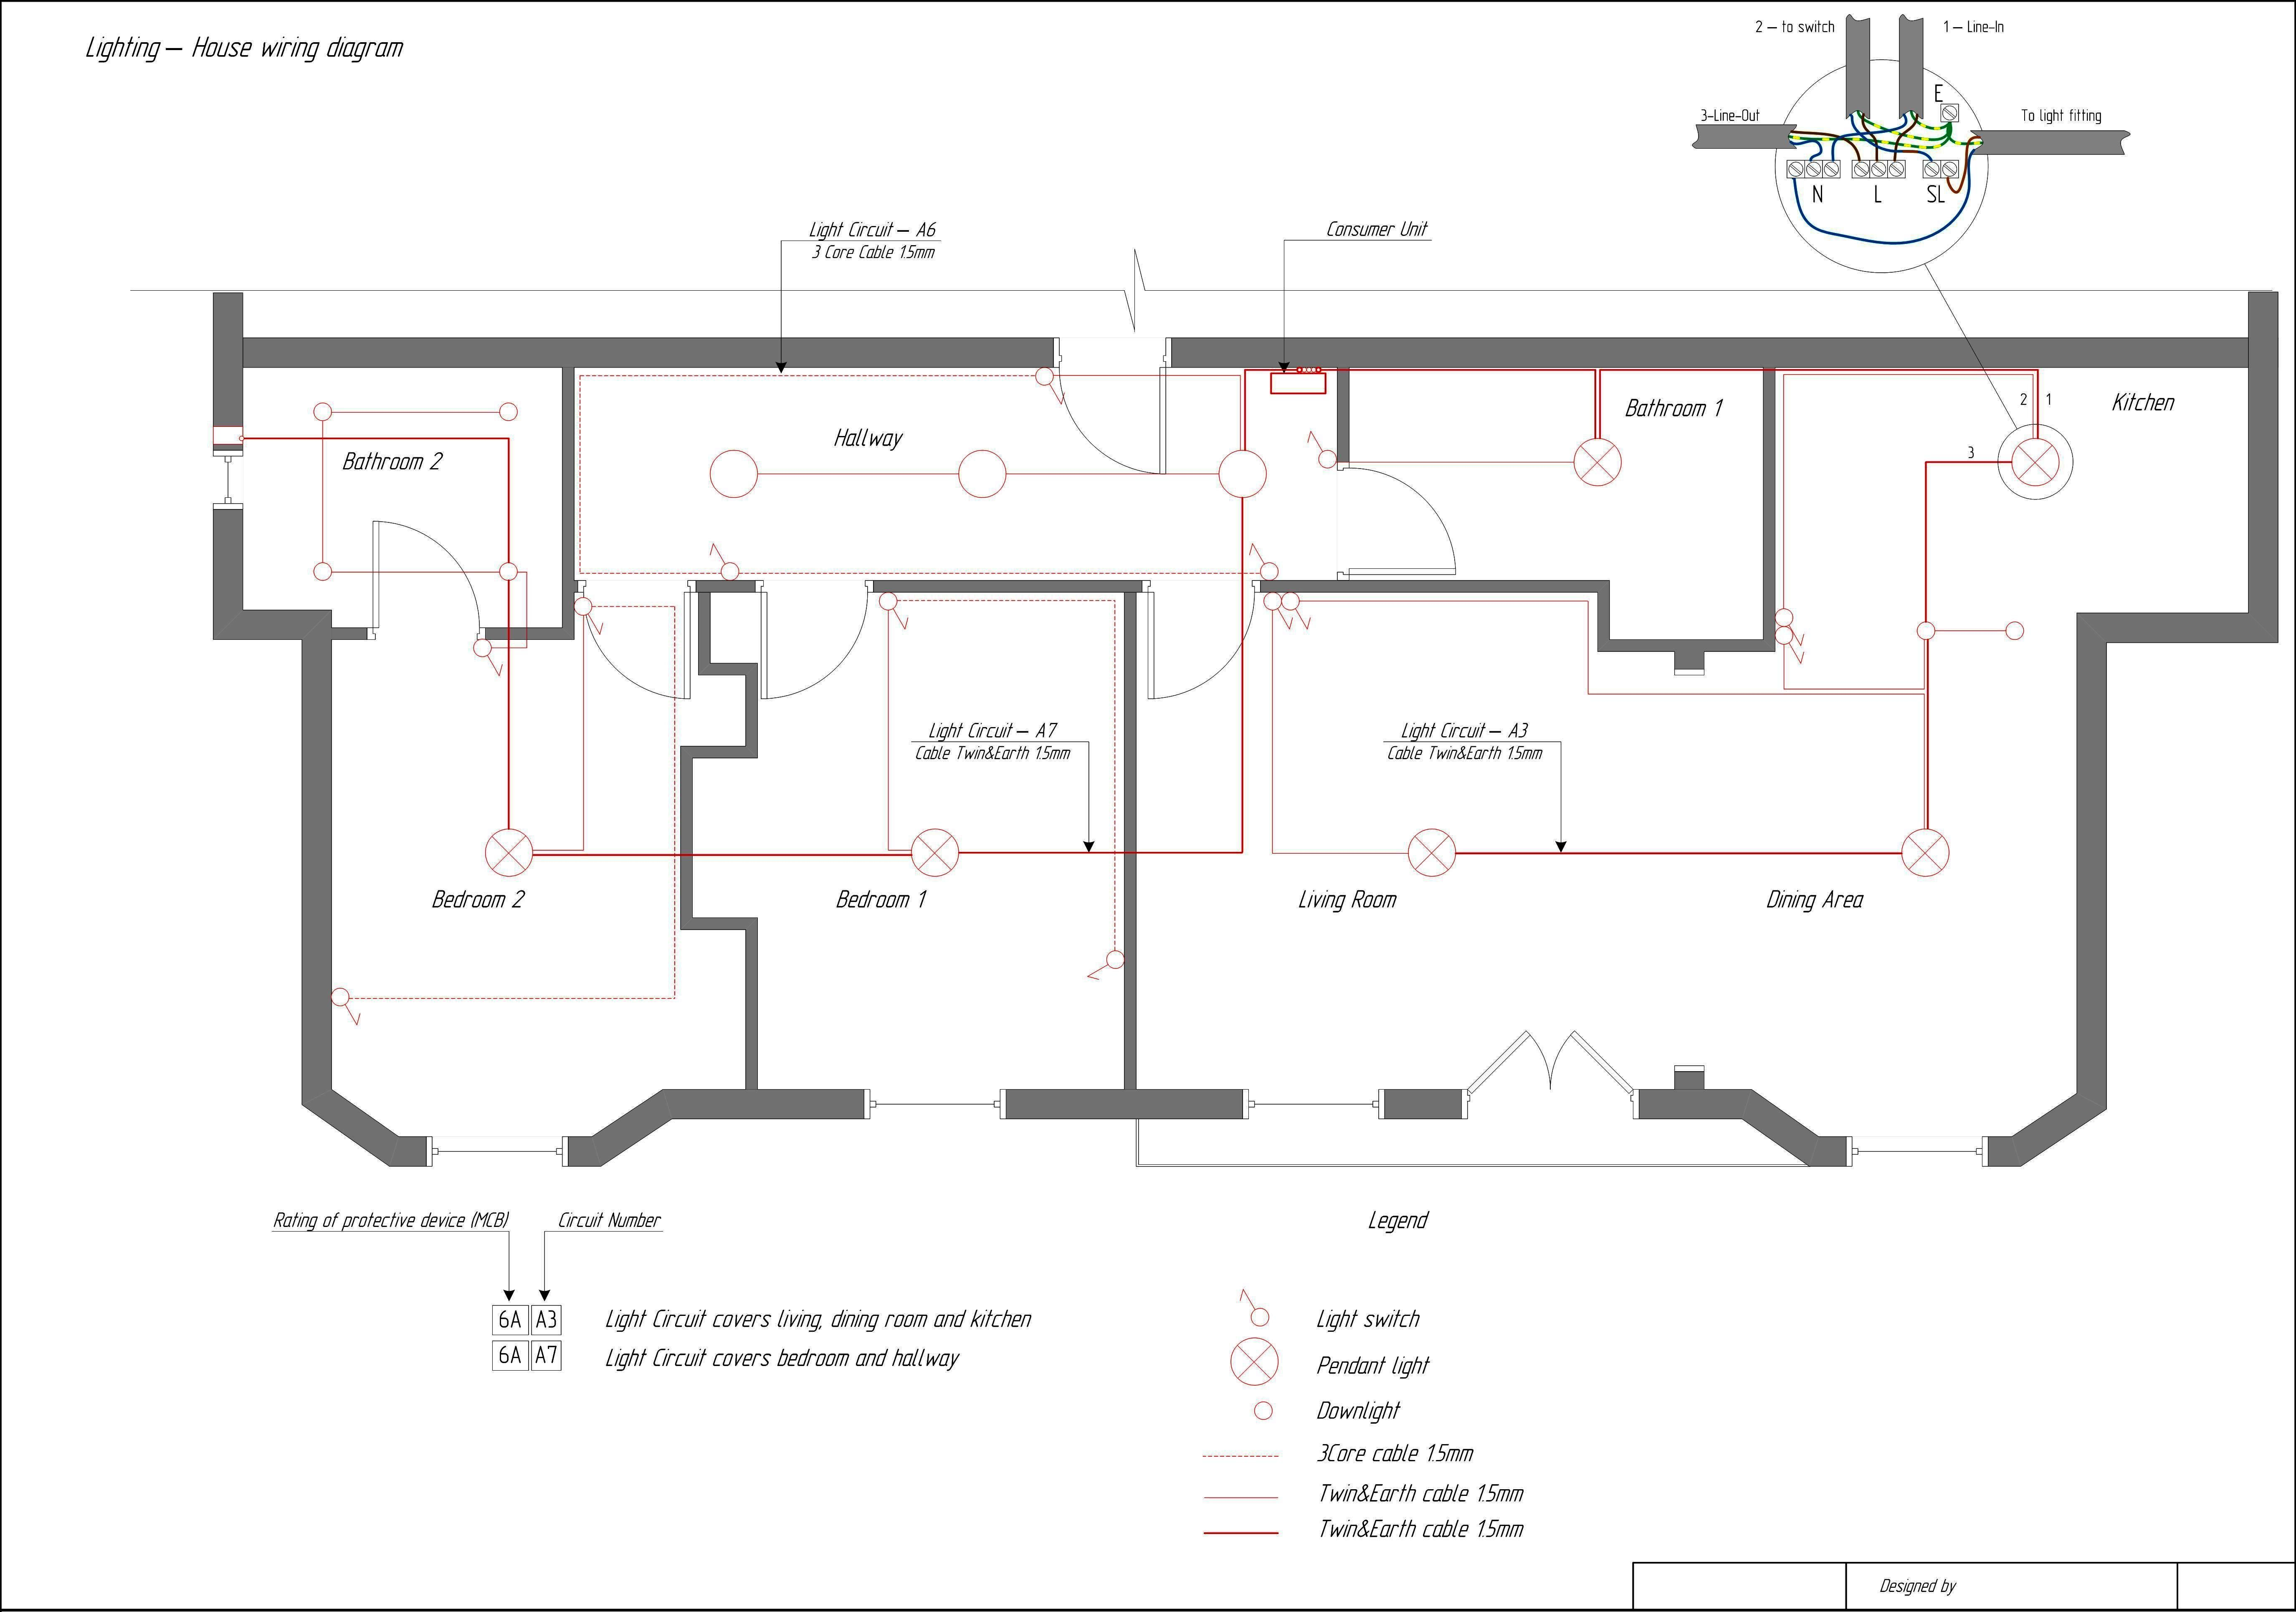 Peachy House Wiring Diagram Project Wiring Diagram M6 Wiring Cloud Ostrrenstrafr09Org